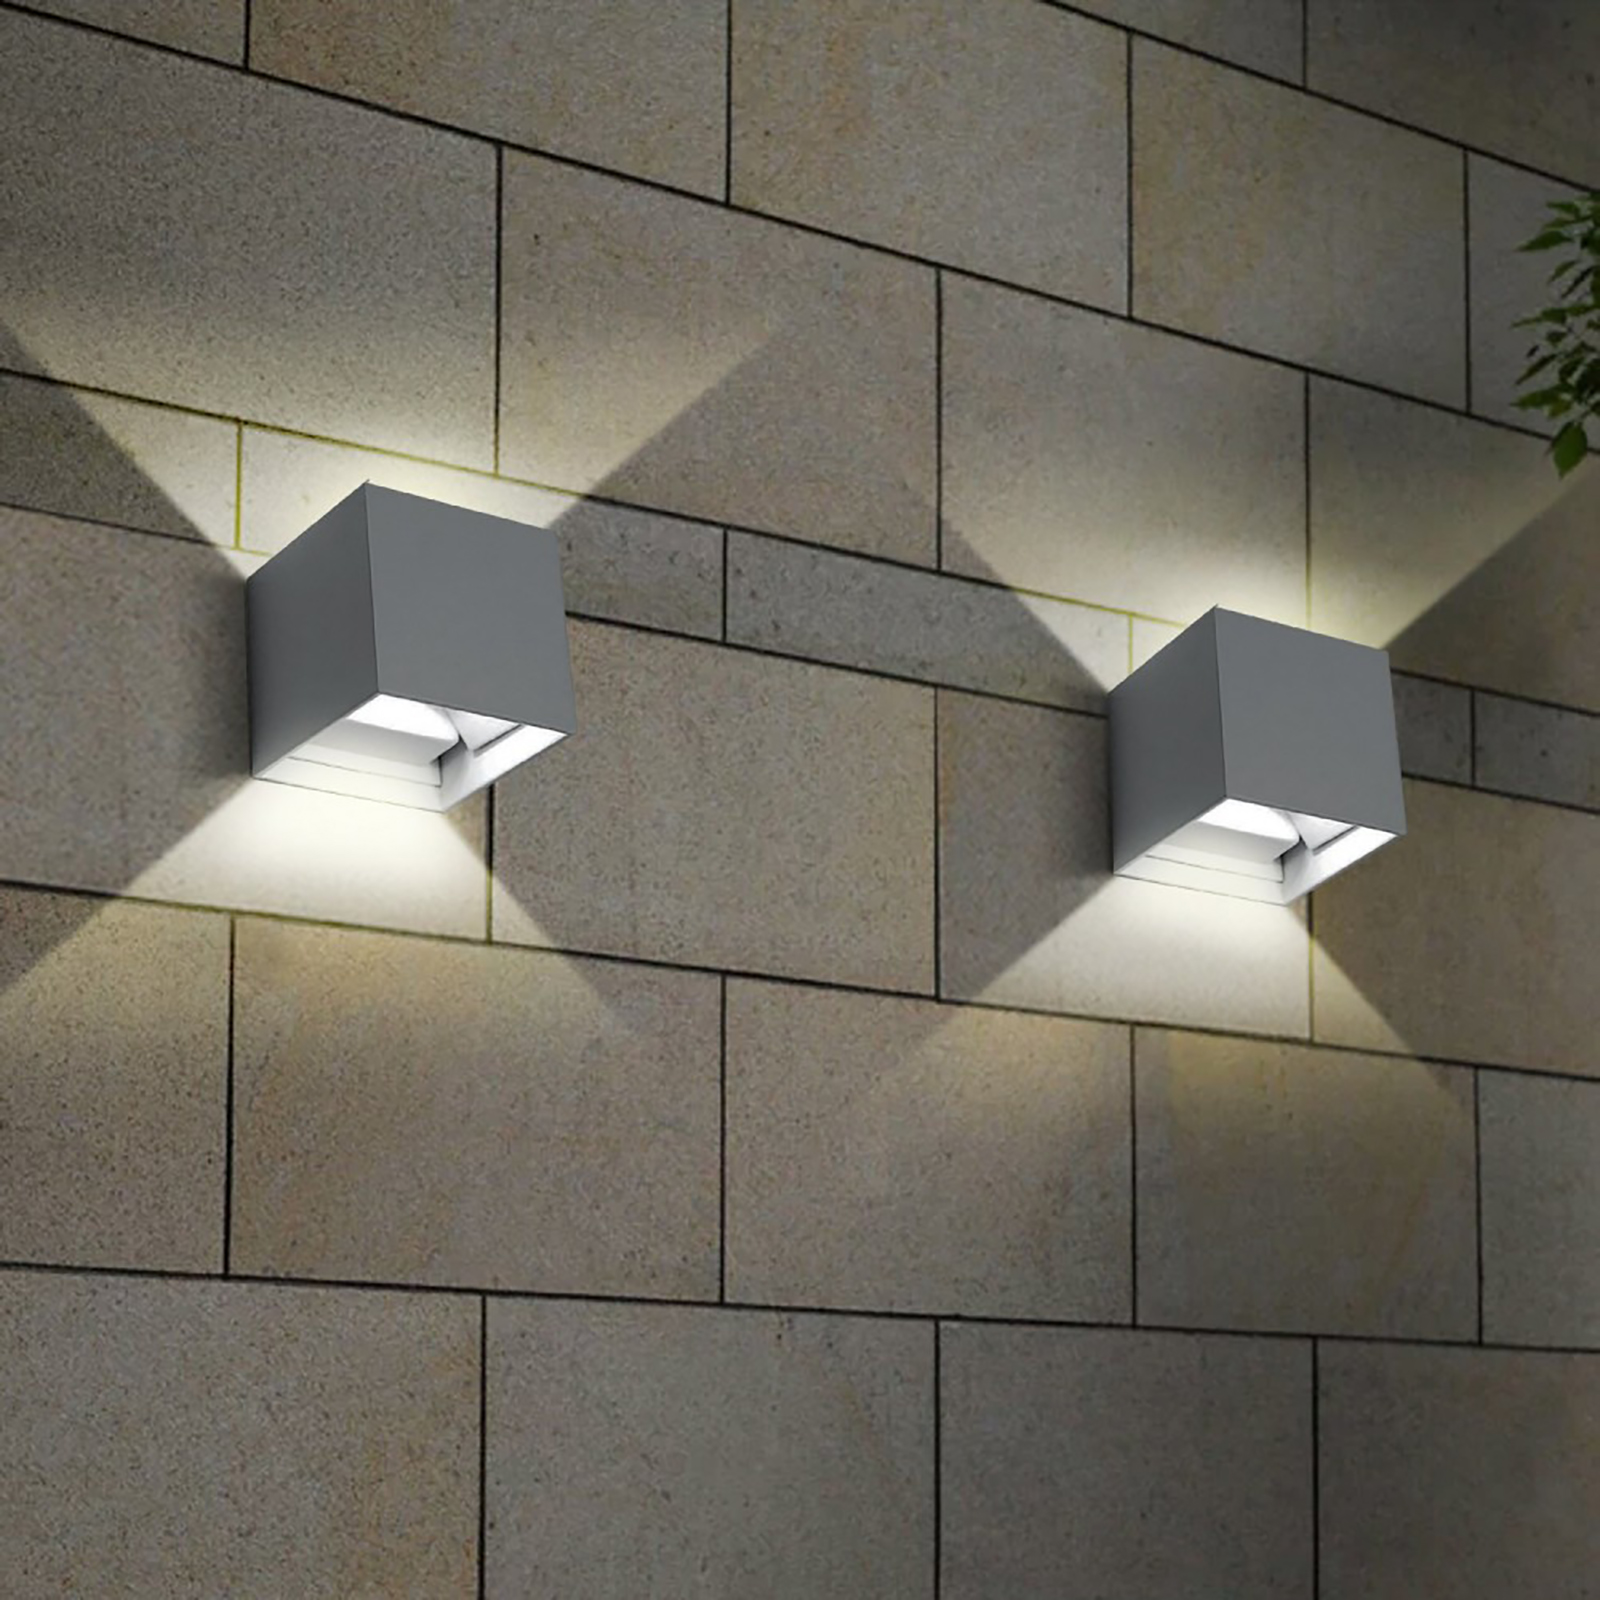 Applique cube outdoor IP65 20W LED 2000 lumen grey white light adjustable